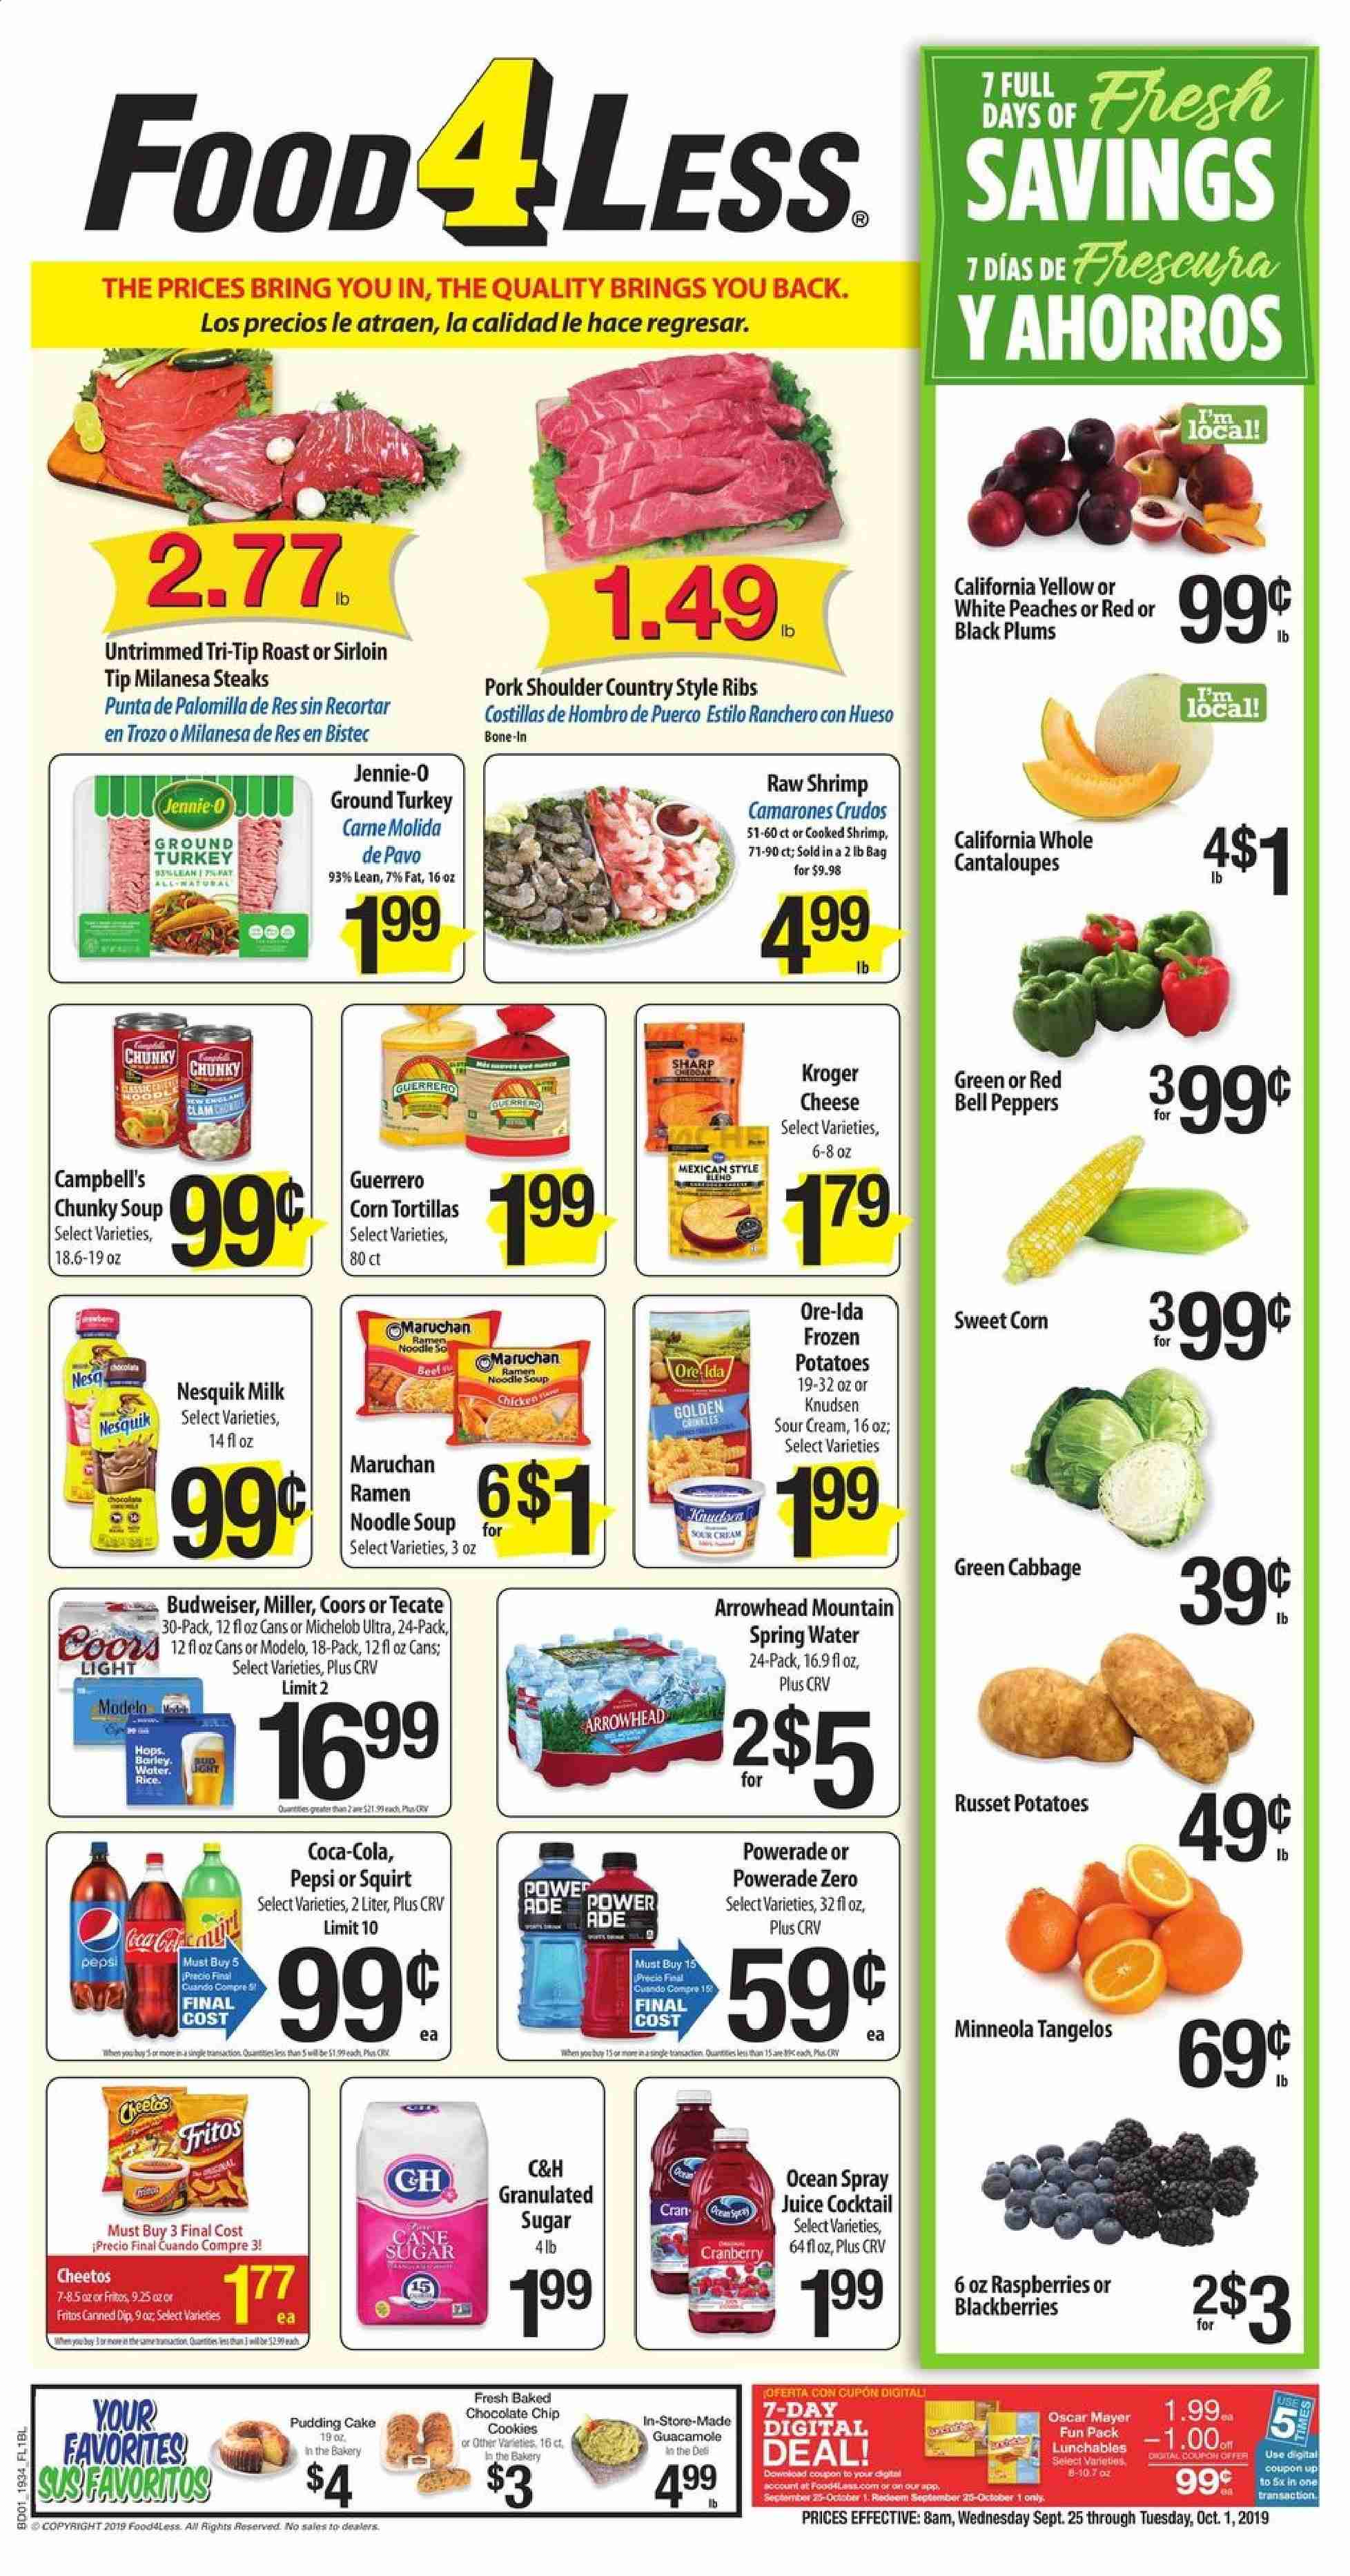 Food 4 Less Flyer - 09.25.2019 - 10.01.2019 - Sales products - Budweiser, Coors, Michelob, bell peppers, cabbage, cantaloupe, corn, russet potatoes, potatoes, peppers, blackberries, raspberries, tangelos, plums, peache, tortillas, cake, clams, shrimps, Campbell's, ramen, soup, guacamole, cheese, pudding, milk, sour cream, chocolate, corn tortillas, Cheetos, Beet, granulated sugar, sugar, cranberries, barley, Fritos, rice, noodle, Coca-Cola, Powerade, Pepsi, juice, spring water, water, ground turkey, turkey, pork meat, pork shoulder, Frozen, Sharp, ribs, cream. Page 1.